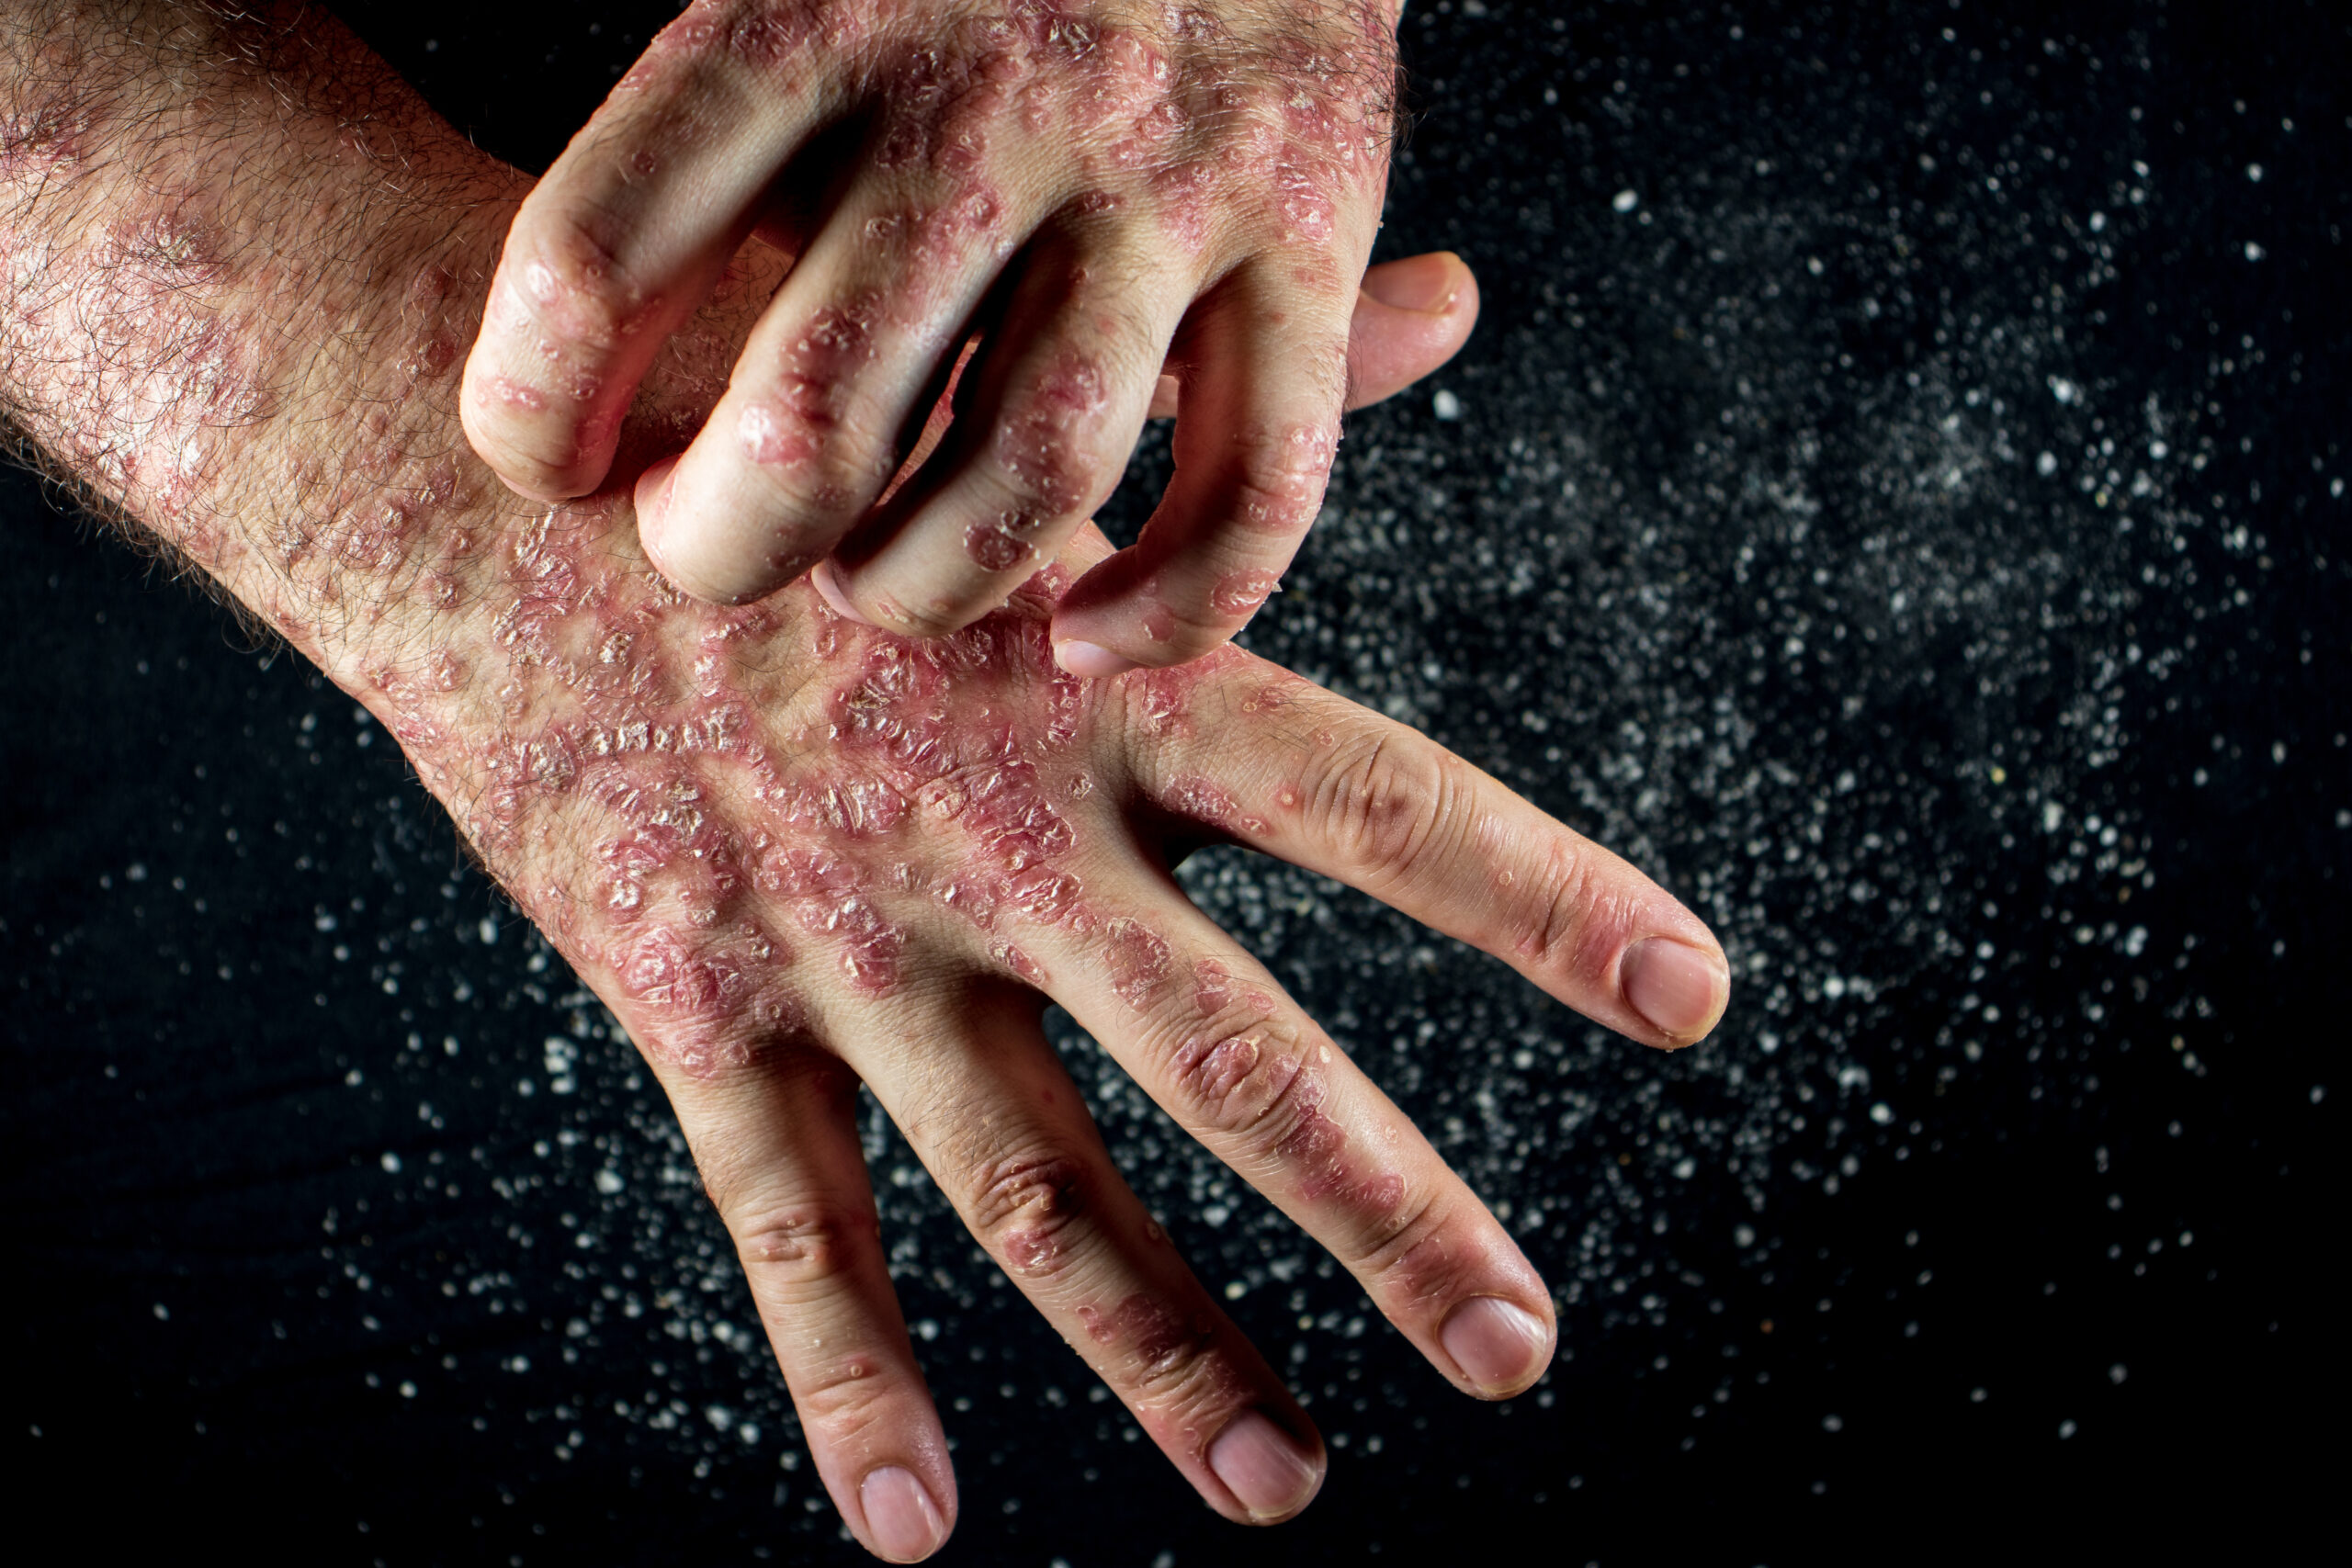 Psoriasis- Causes, Types, Symptoms, and More